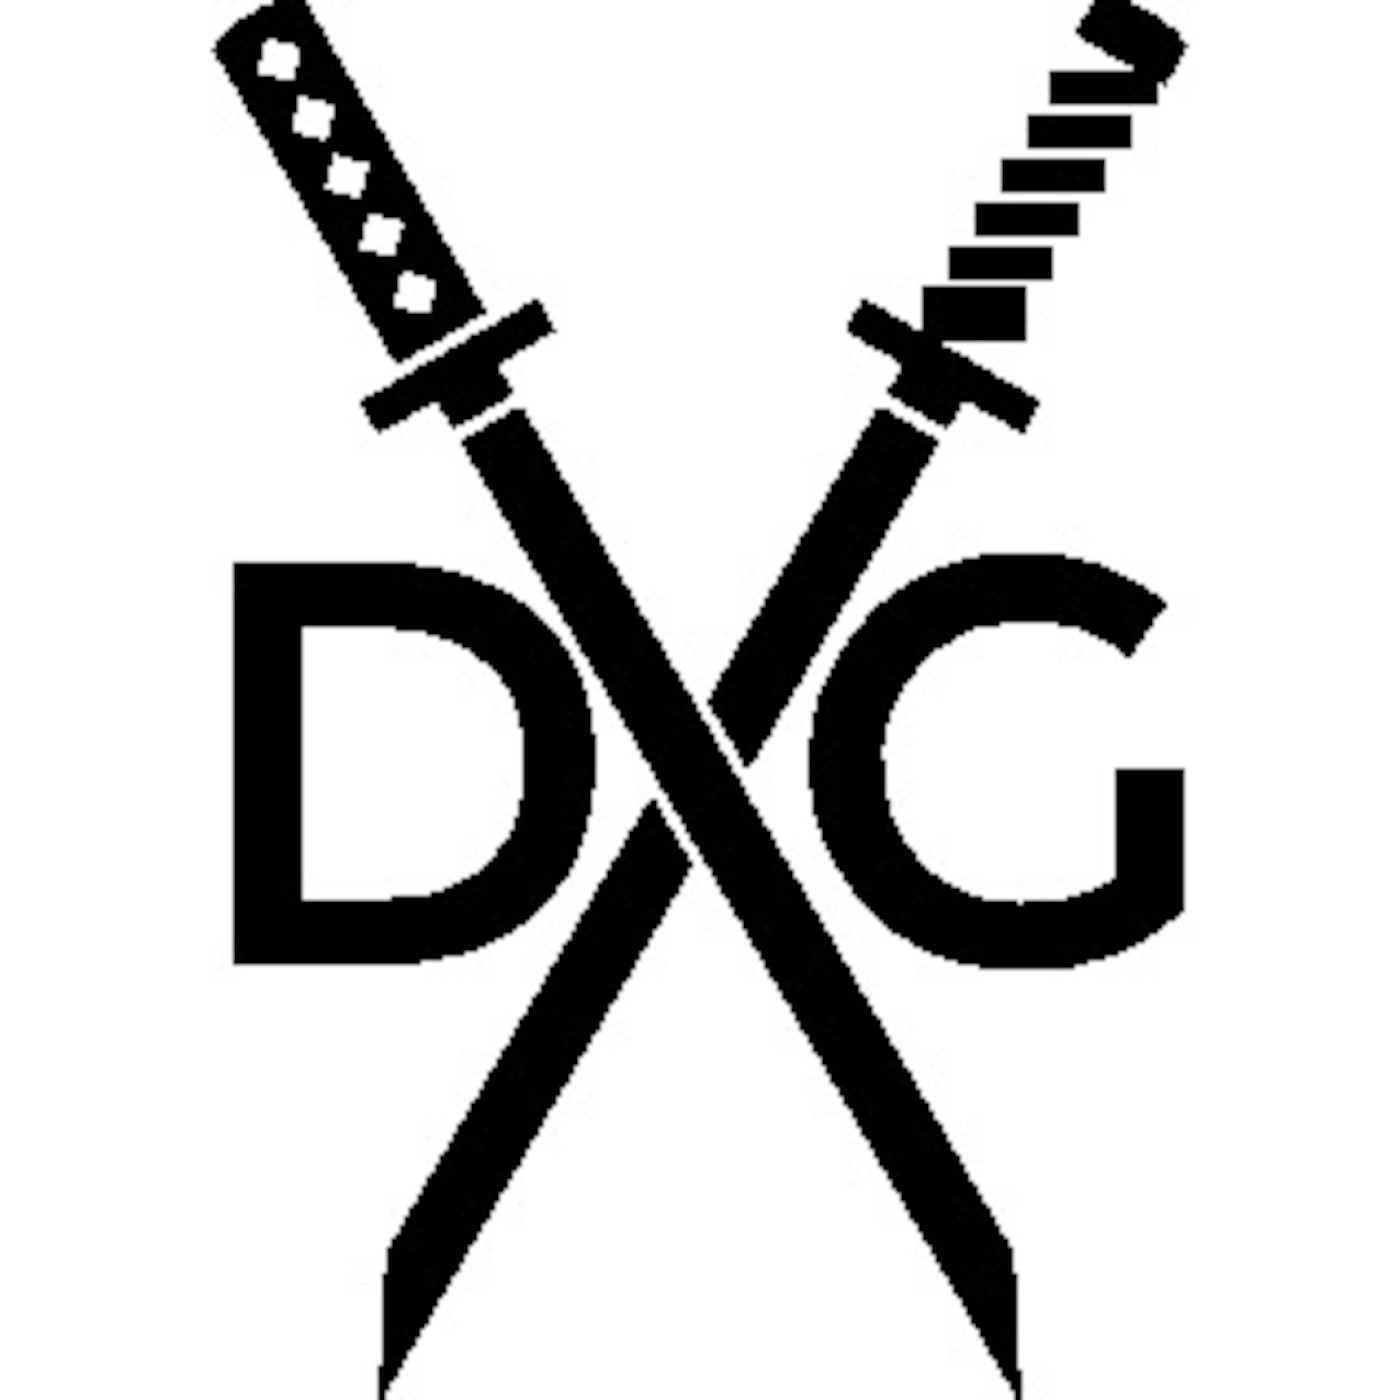 D&G Podcast